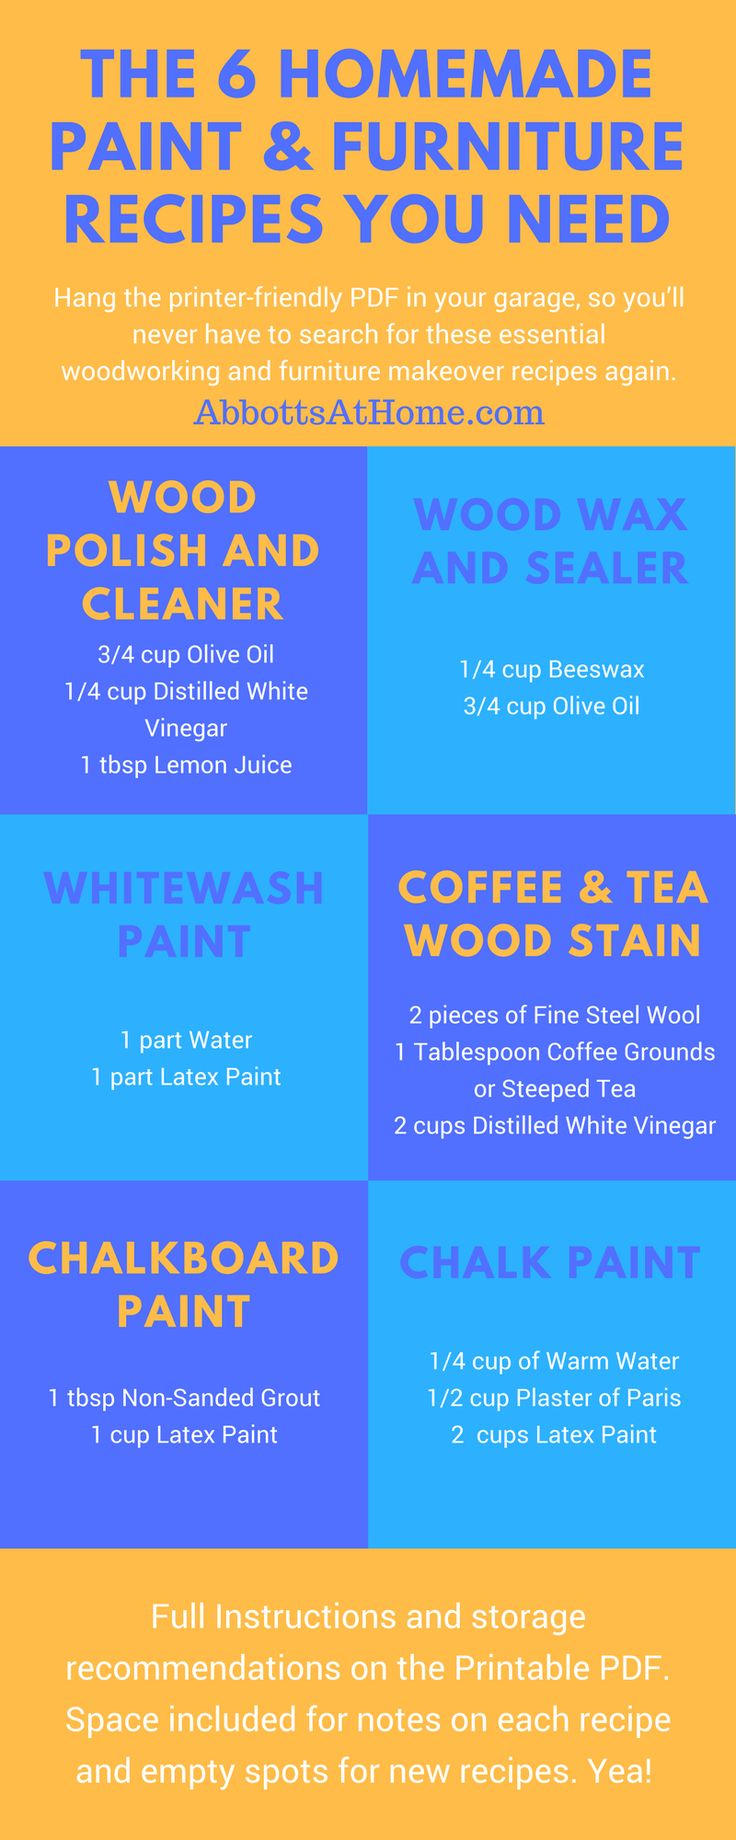 Follow the link to get the Printer-friendly PDF. Print it out and hang in your garage. Room for your recipes included. Save these 6 Recipes for woodworking and furniture finishing to your Pinterest boards. Homemade Wood Cleaner and Restorer Recipe, Chalk